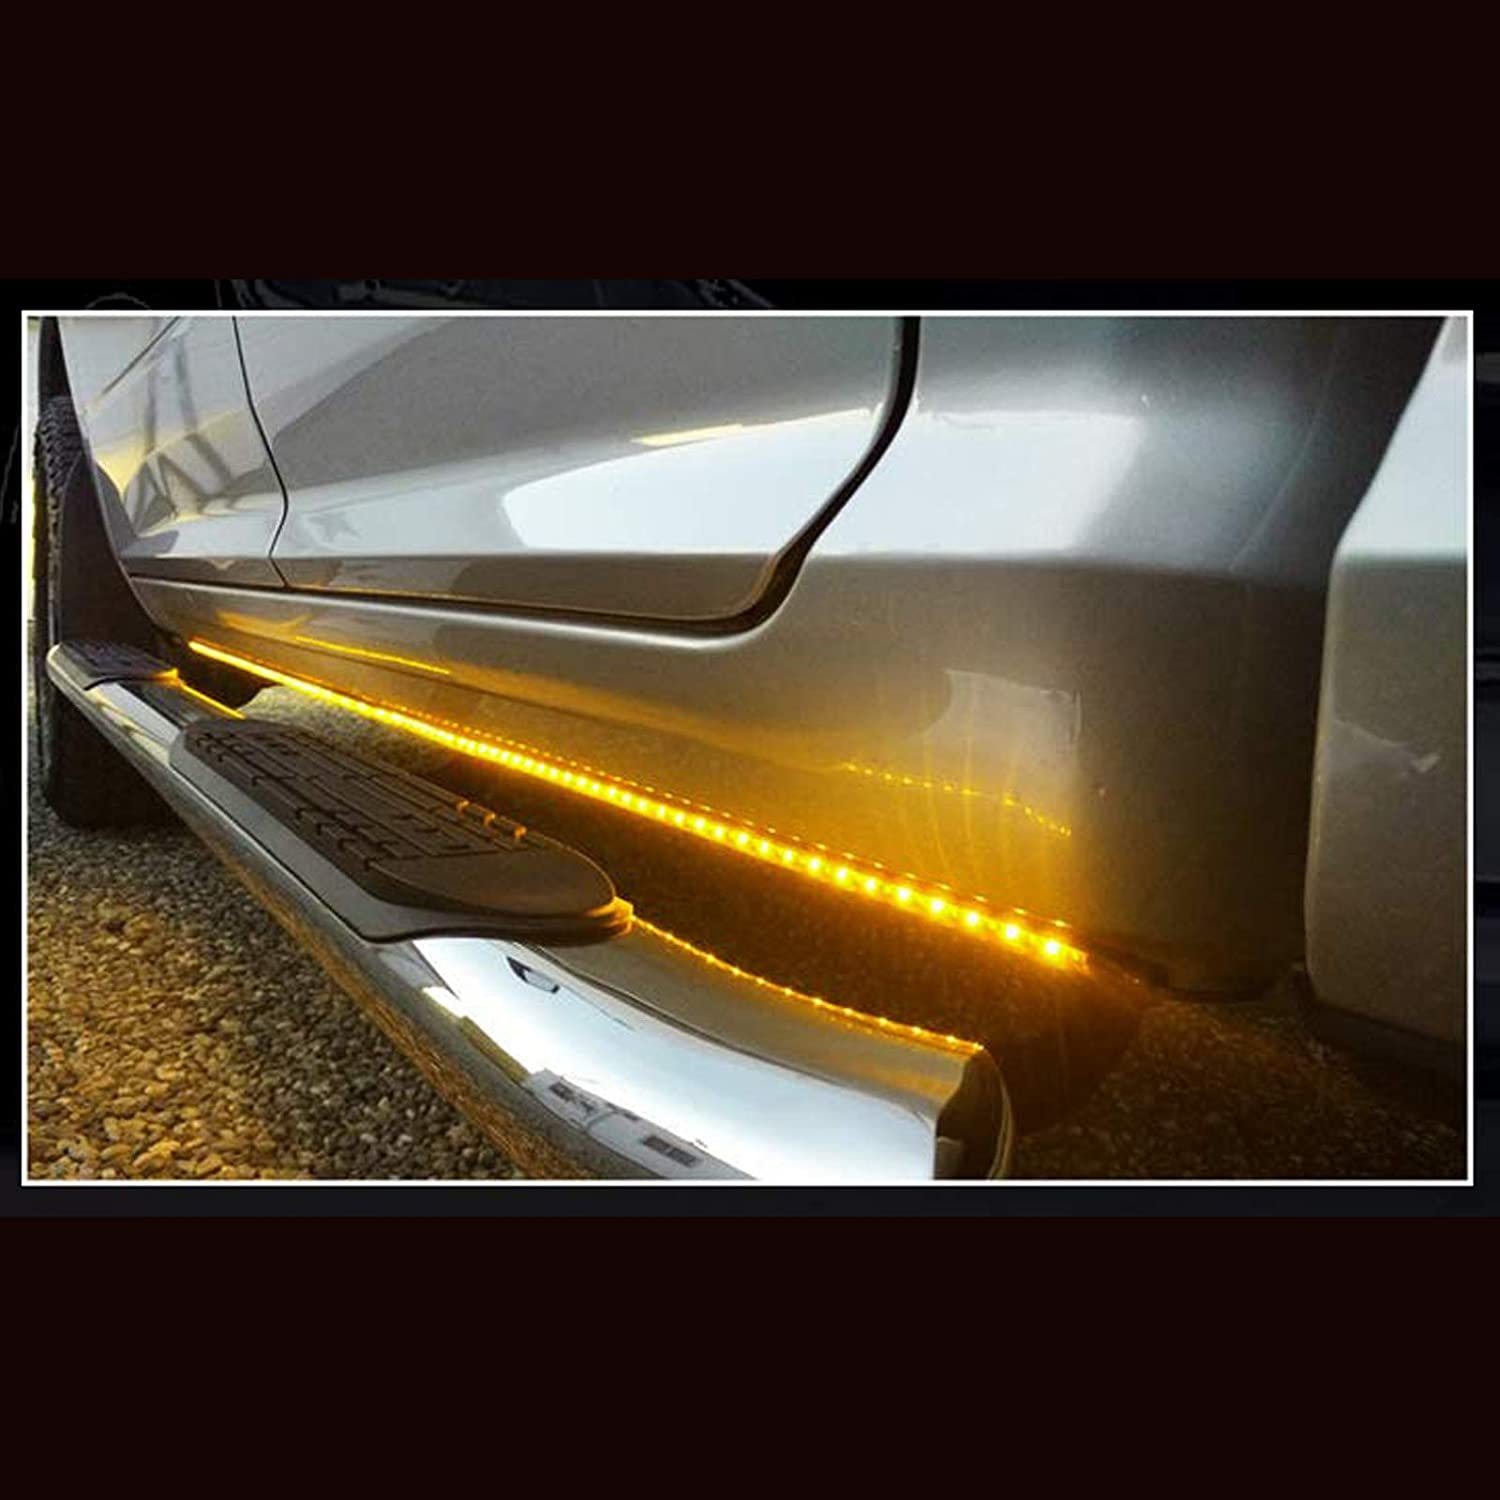 NBWDY 2pcs 62inch LED Truck Running Board Light Strips for Side Marker w//SEQUENTIAL Amber Turn Signal and White Courtesy Light use for Trucks Pickup SUV